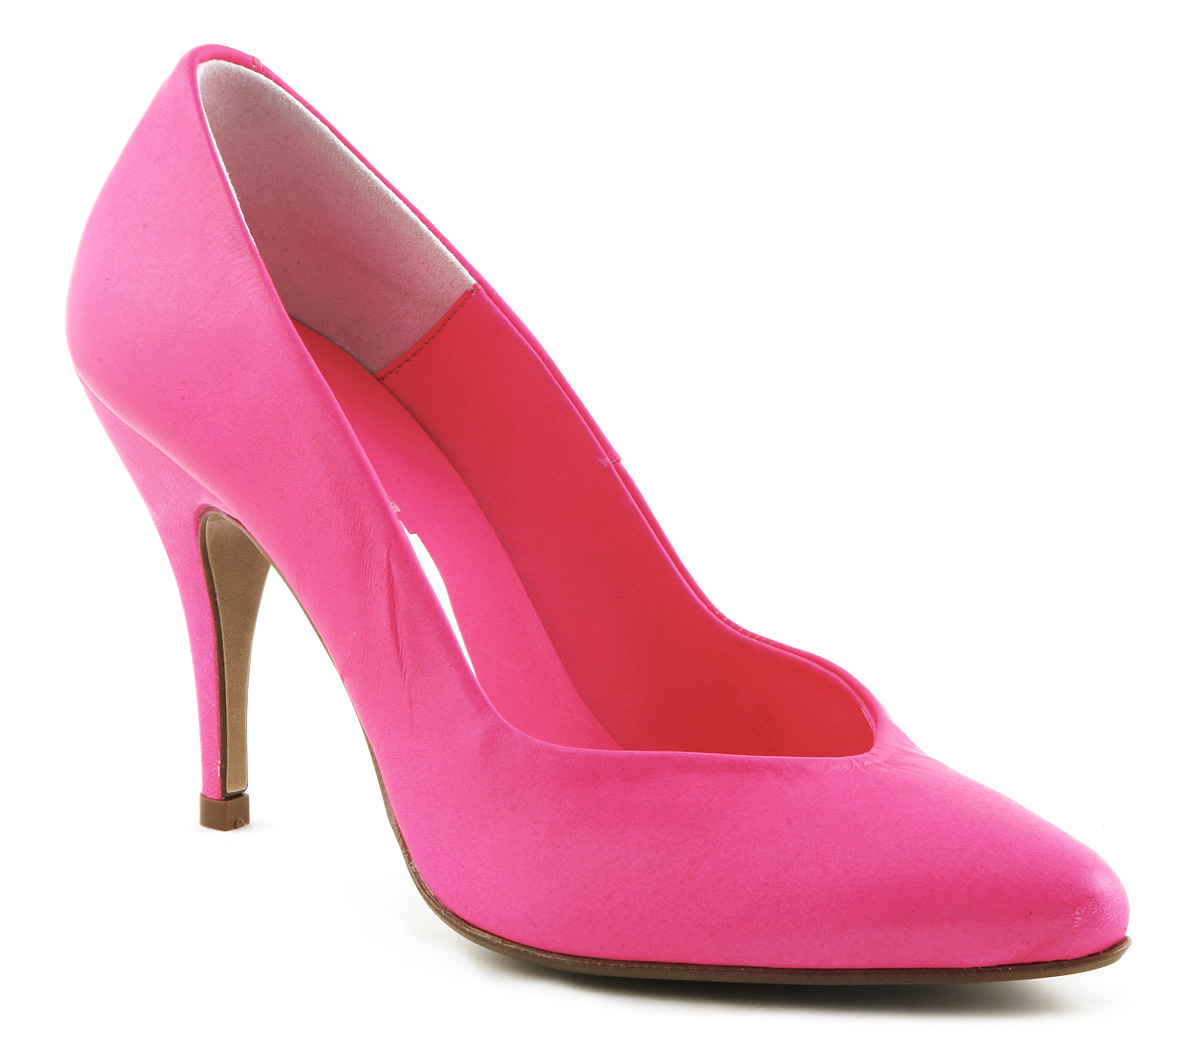 artist today pink shoes designs for